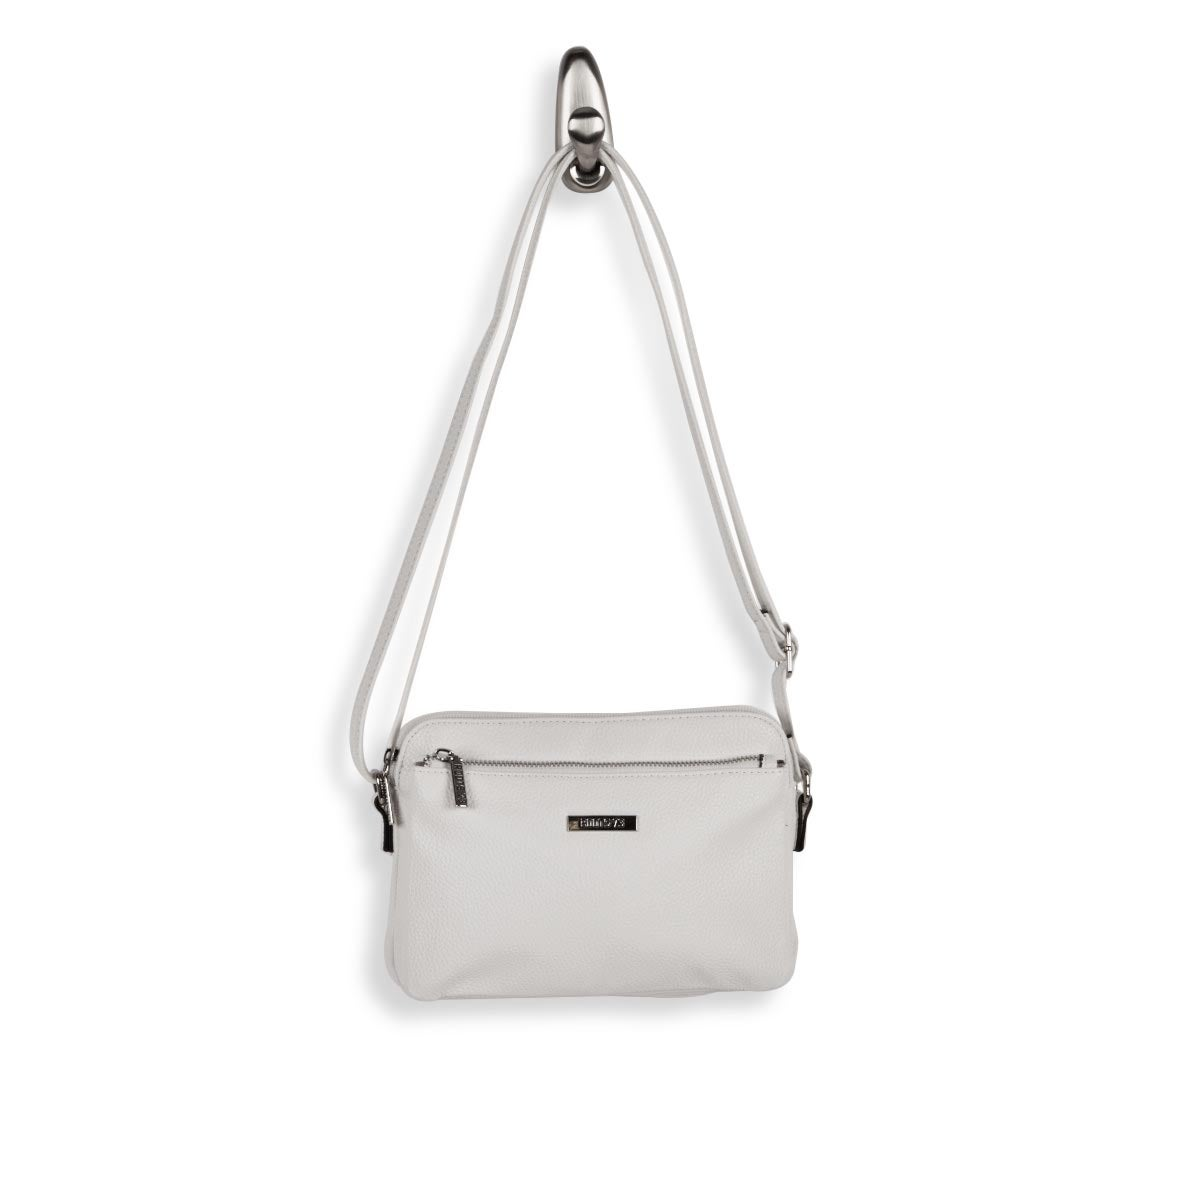 Lds white east/west small crossbody bag